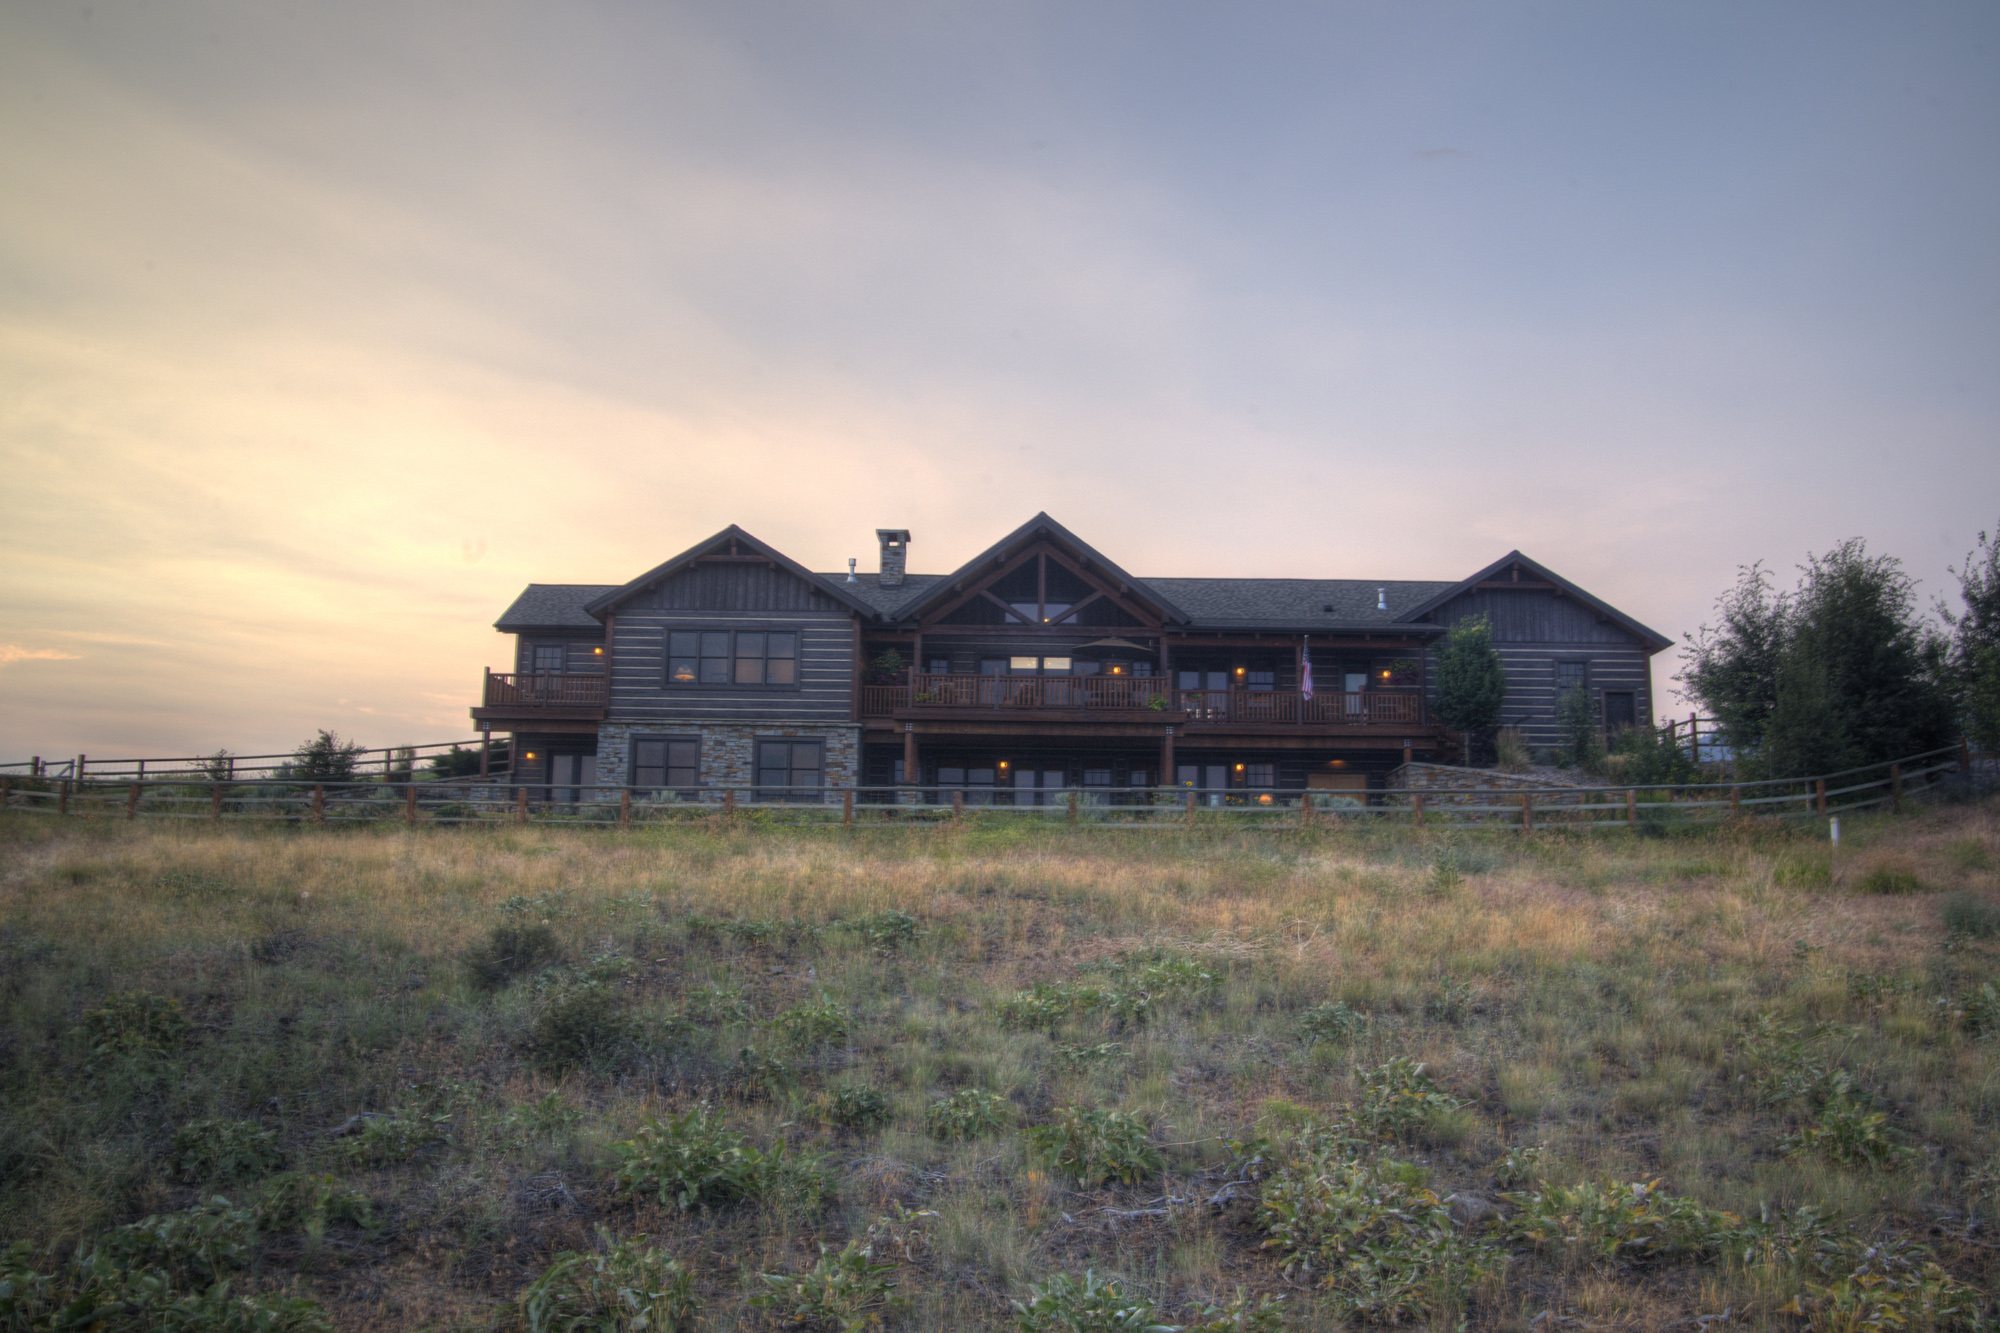 Single Family Home for Sale at 2062 Hawks Peak Drive 2062 Hawks Peak Dr Florence, Montana 59833 United States